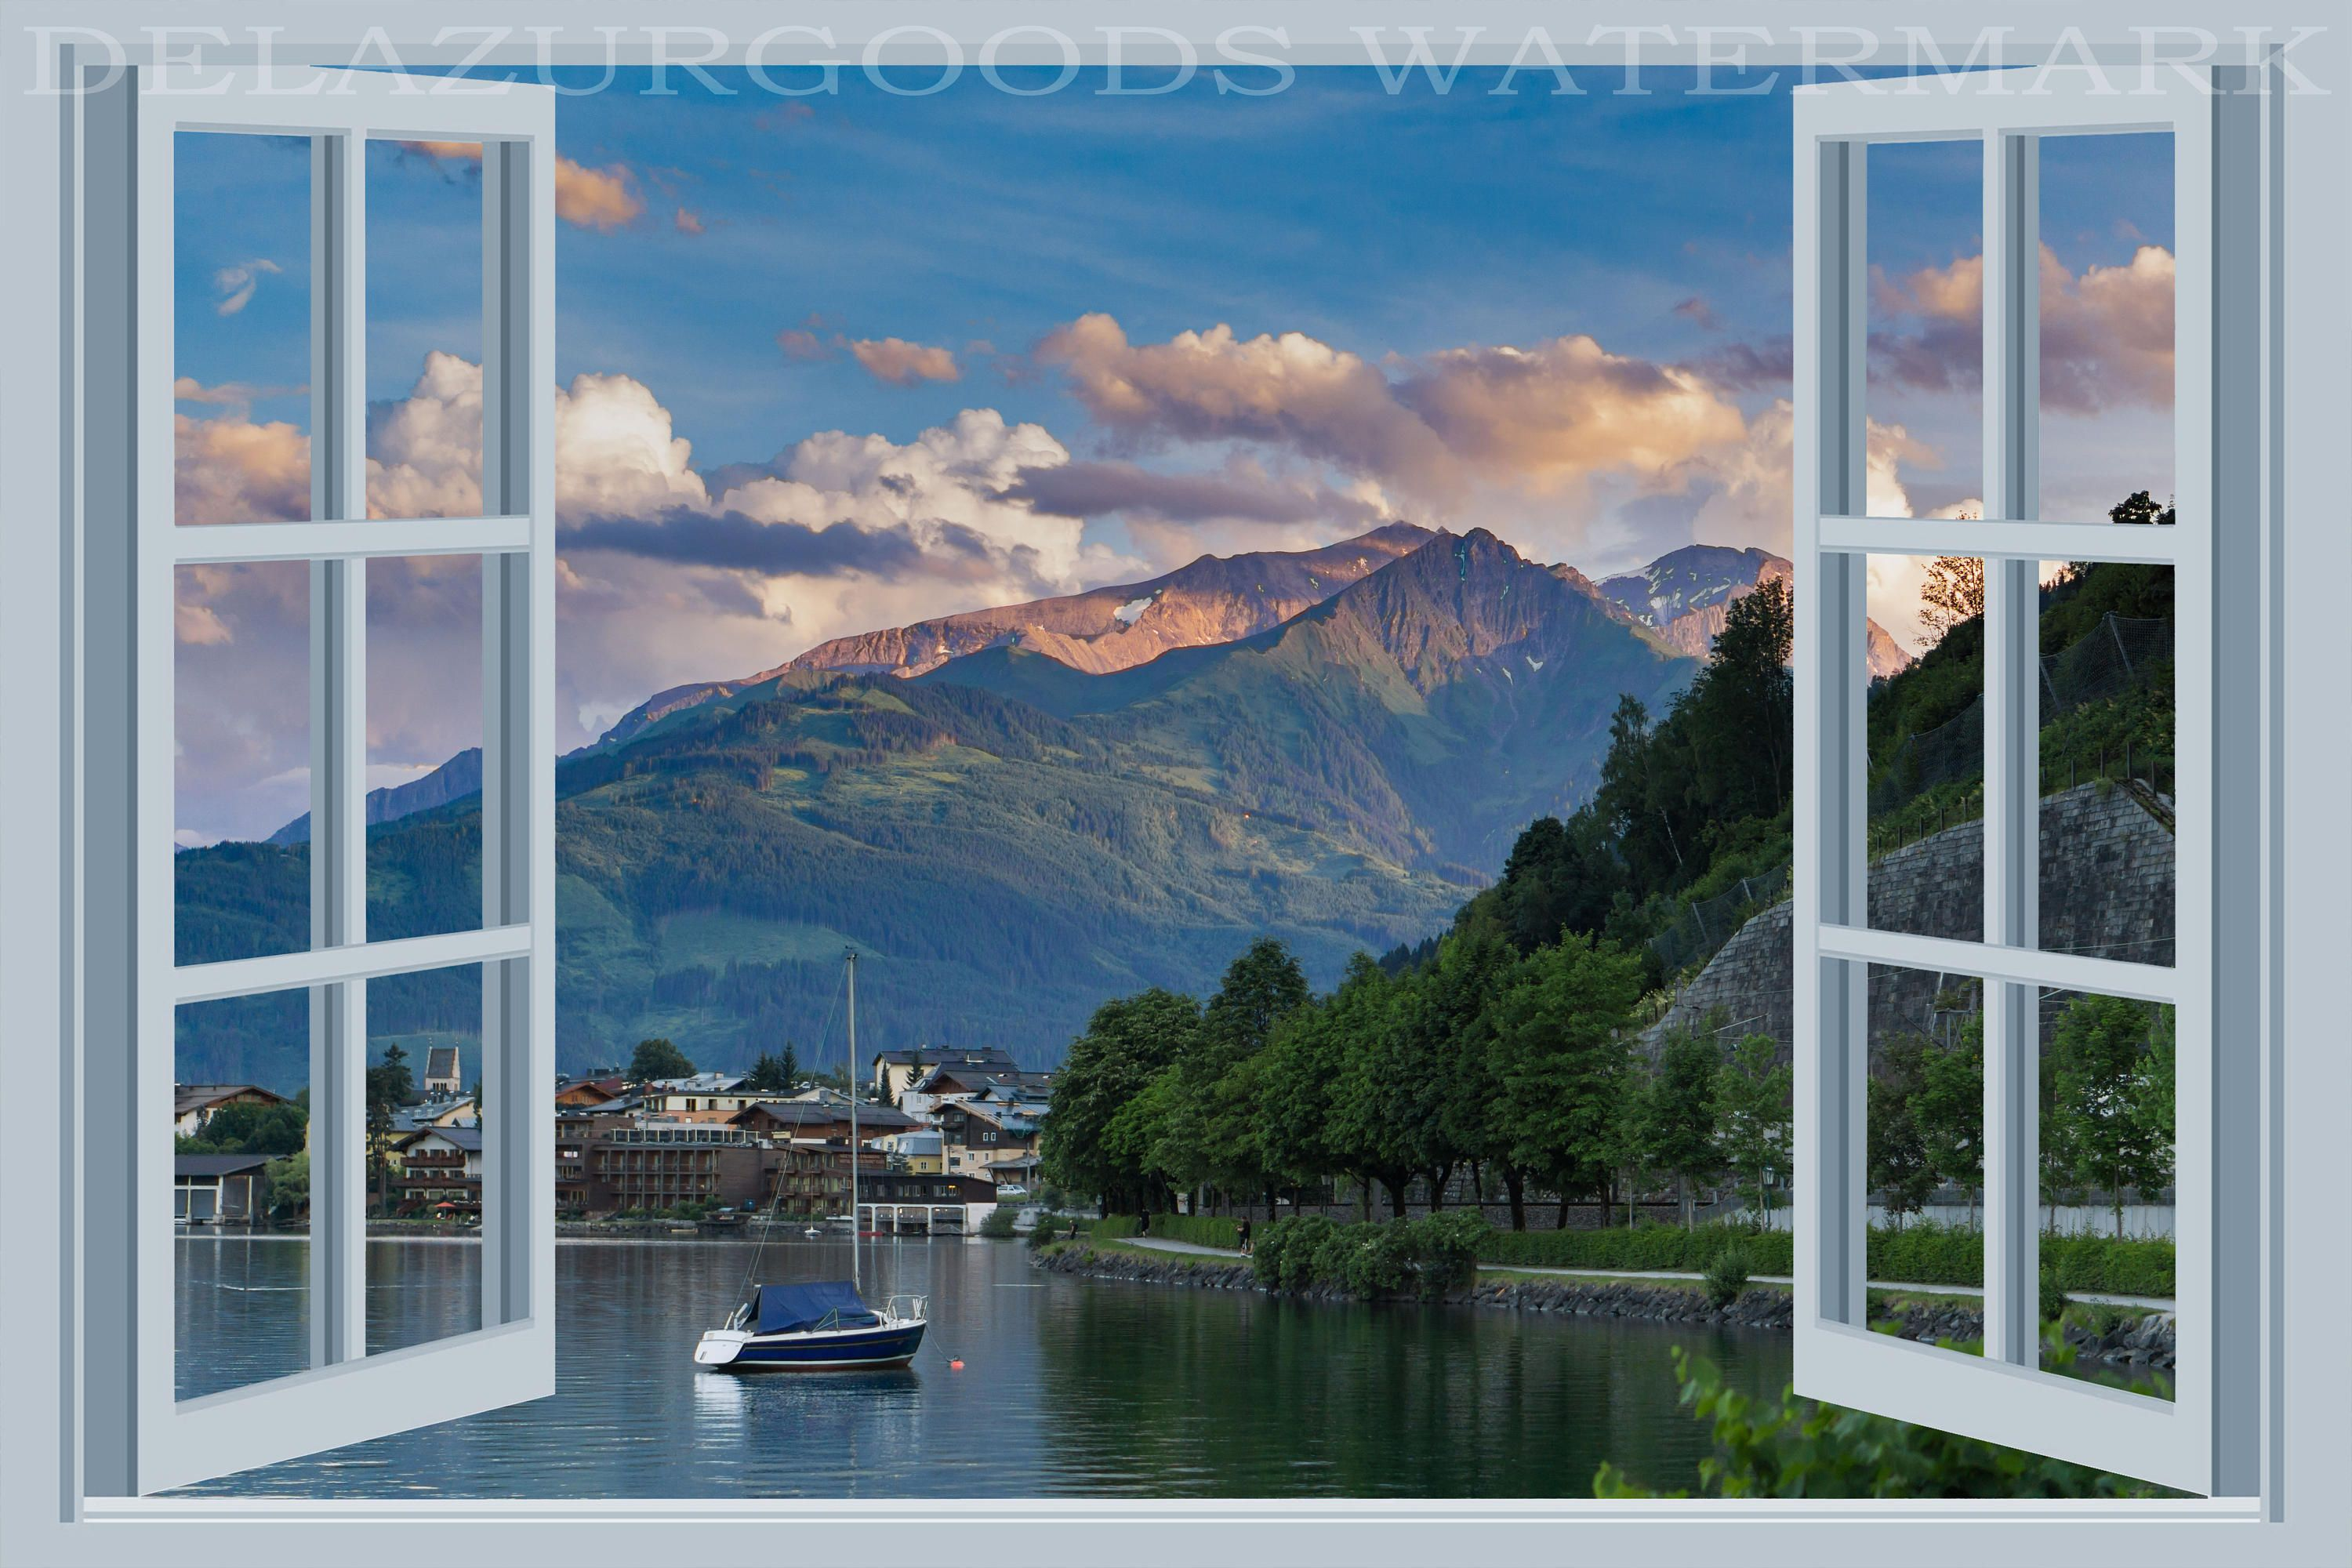 Lake Town Window View Wallpaper Peel And Stick Etsy View Wallpaper Window View Wallpaper